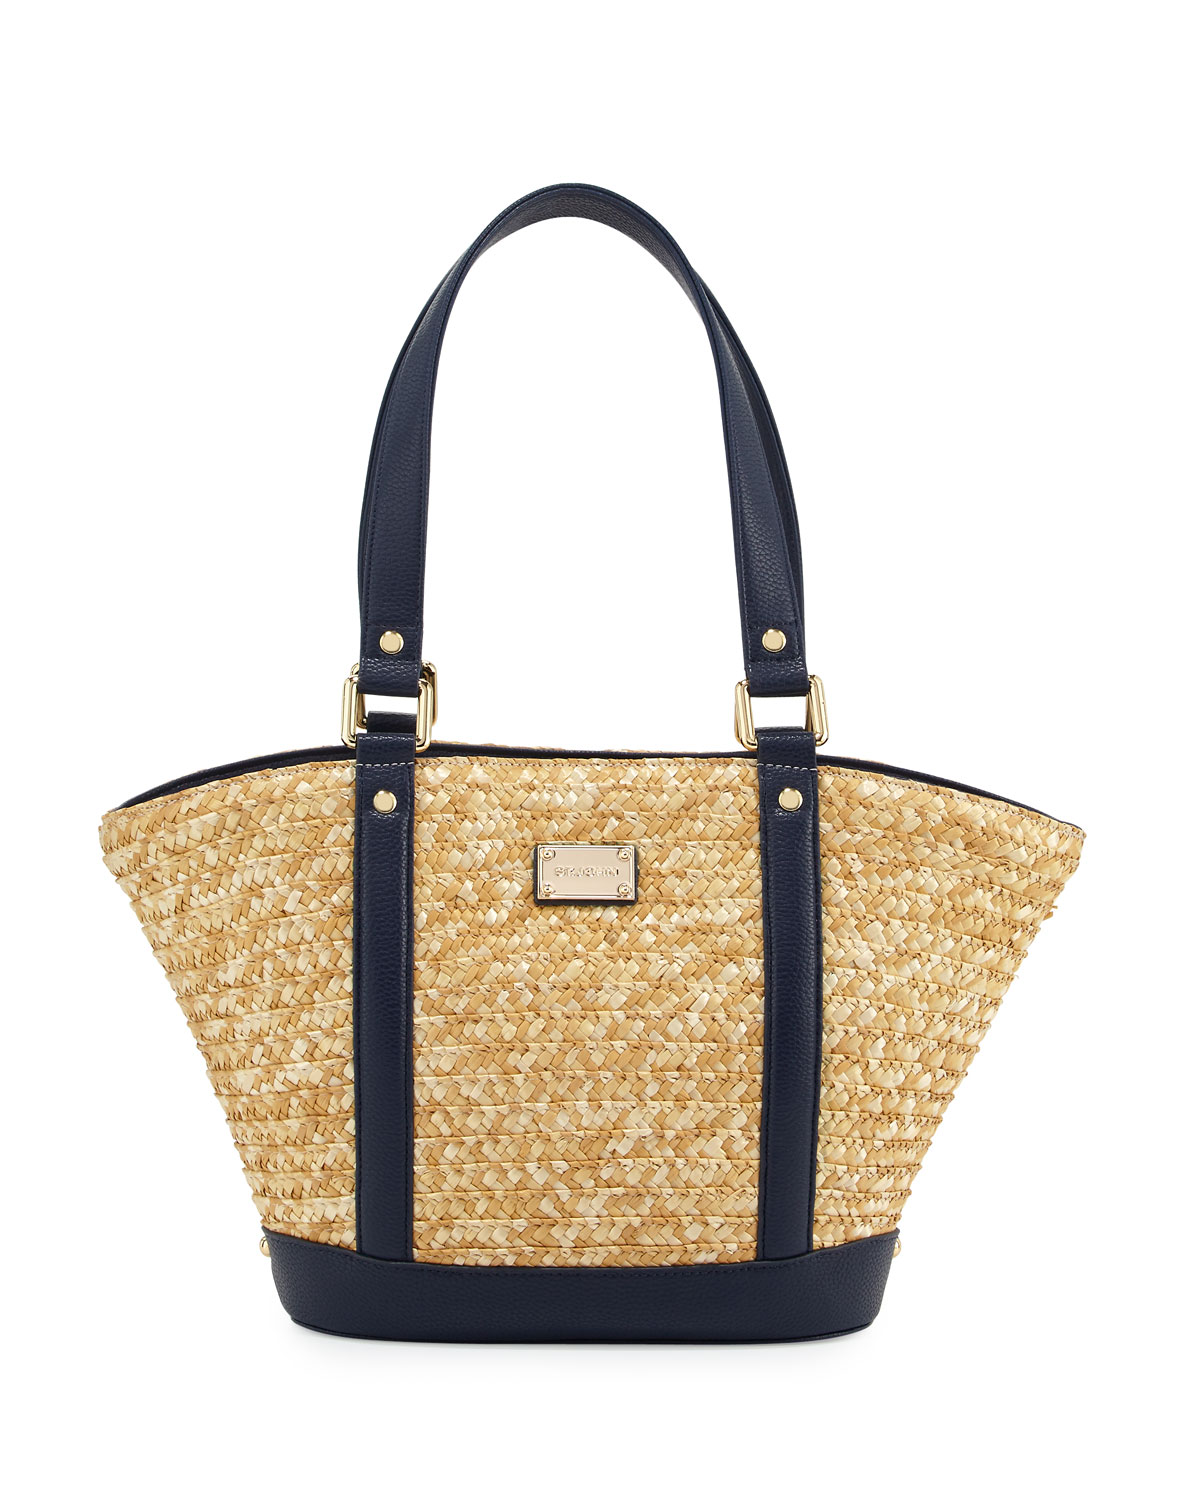 Woven Straw Tote Bag, Natural/Navy